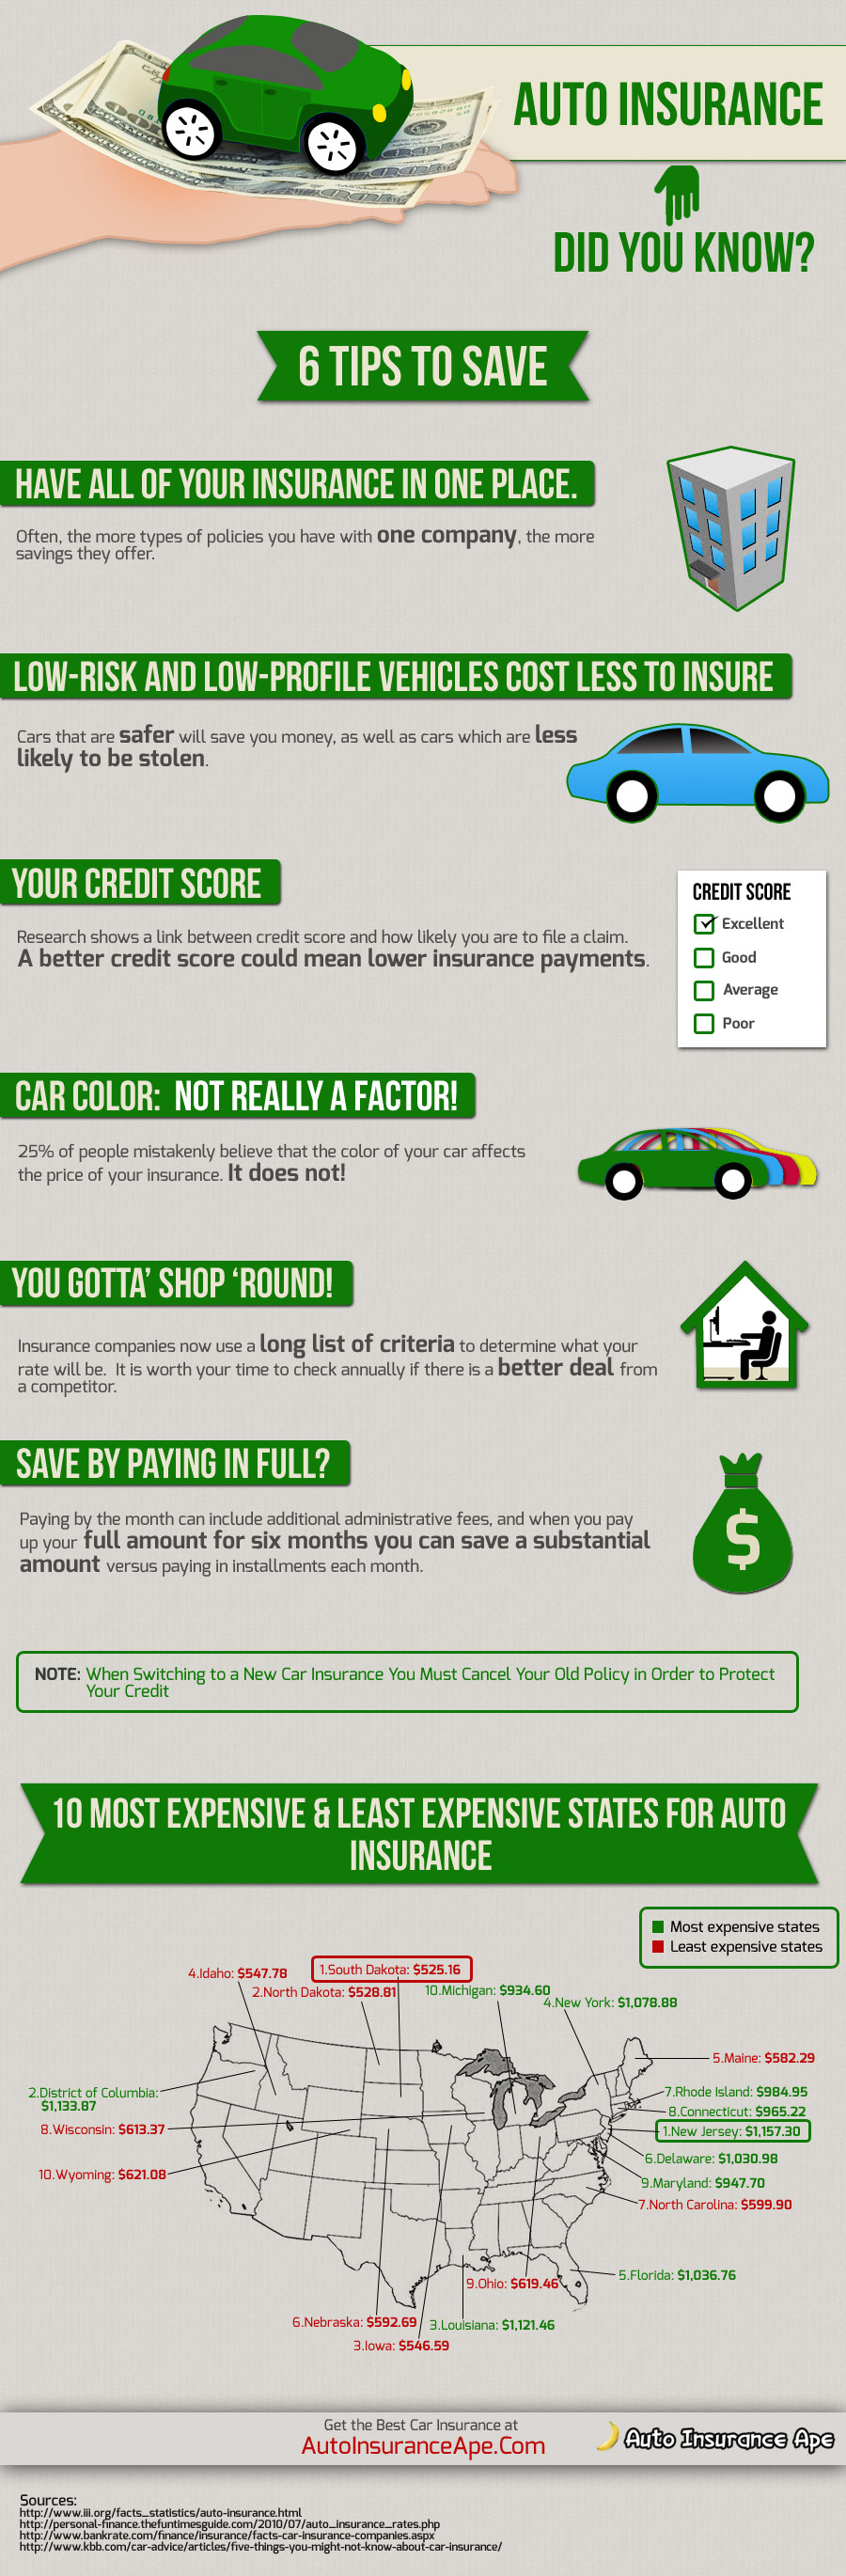 6 Tips to Save on Auto Insurance